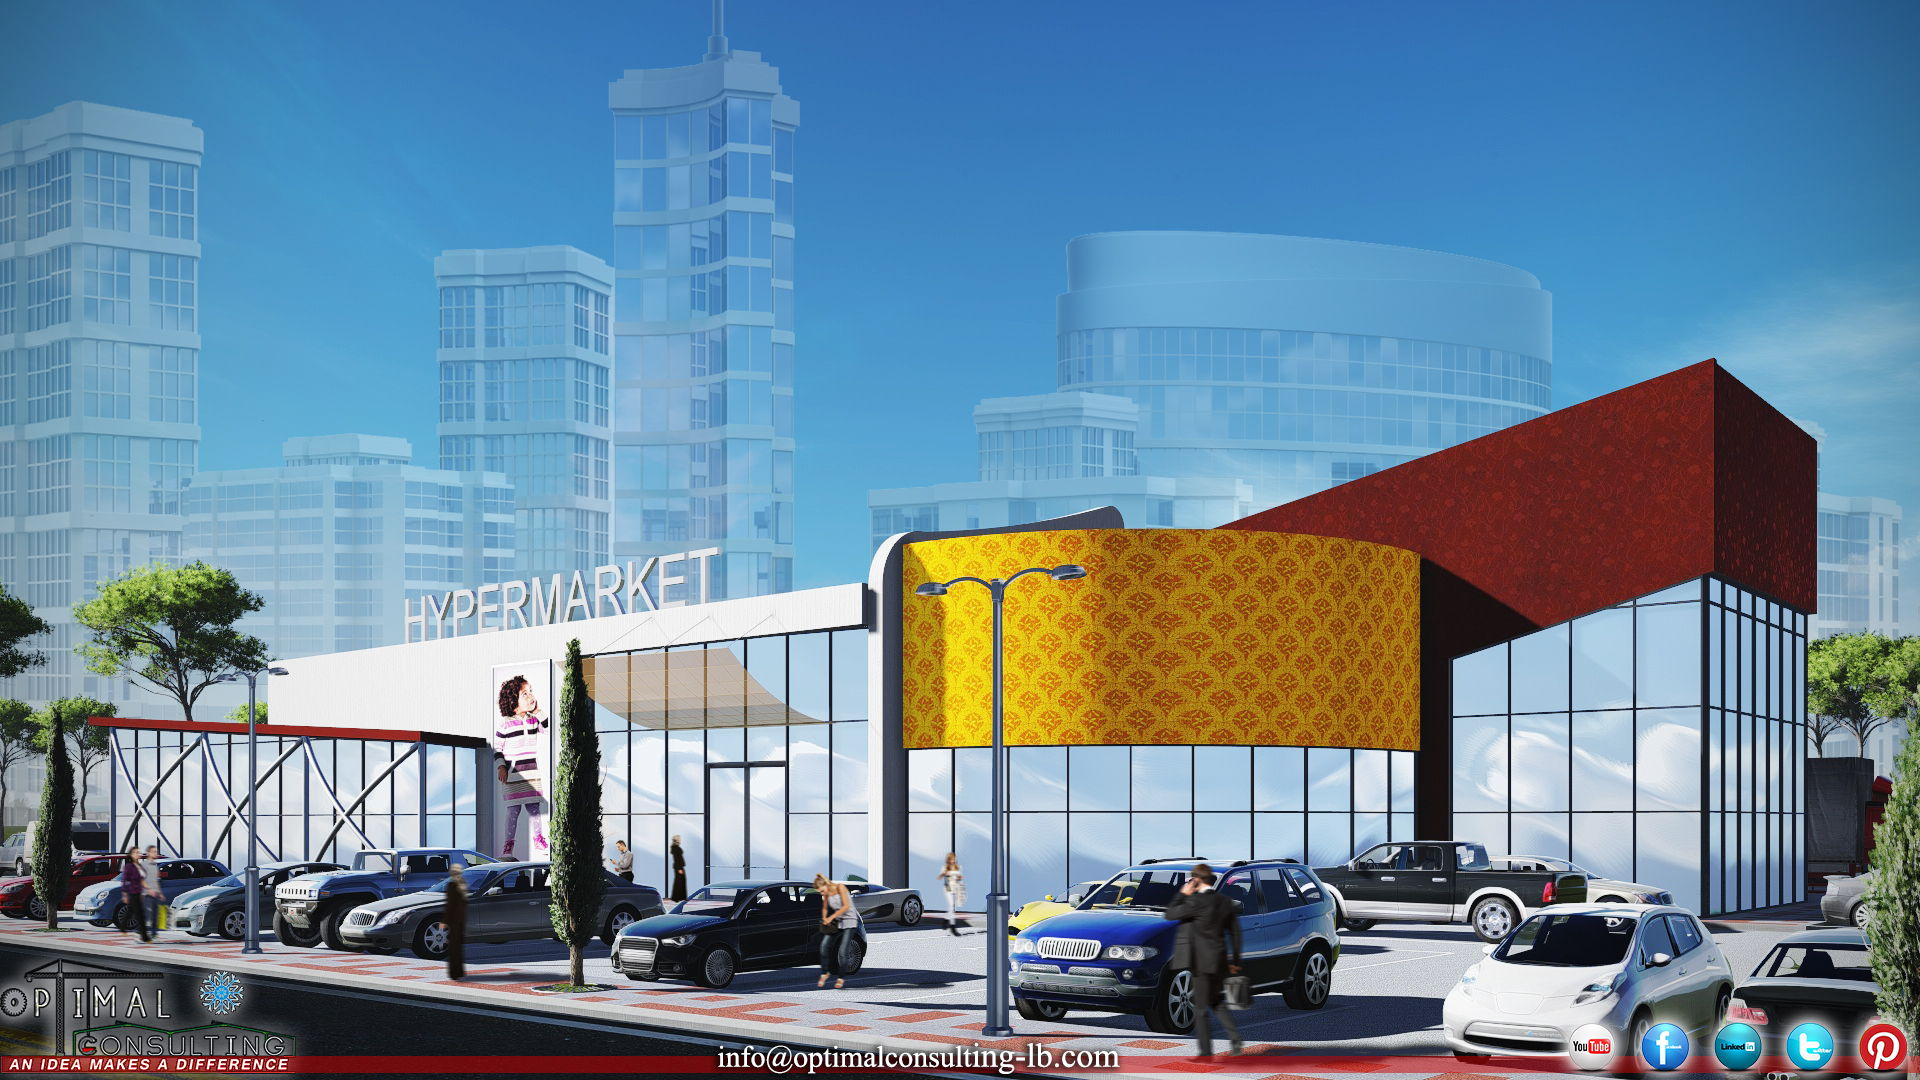 Exterior architecture concept design for a hypermarket in beirut, lebanon.